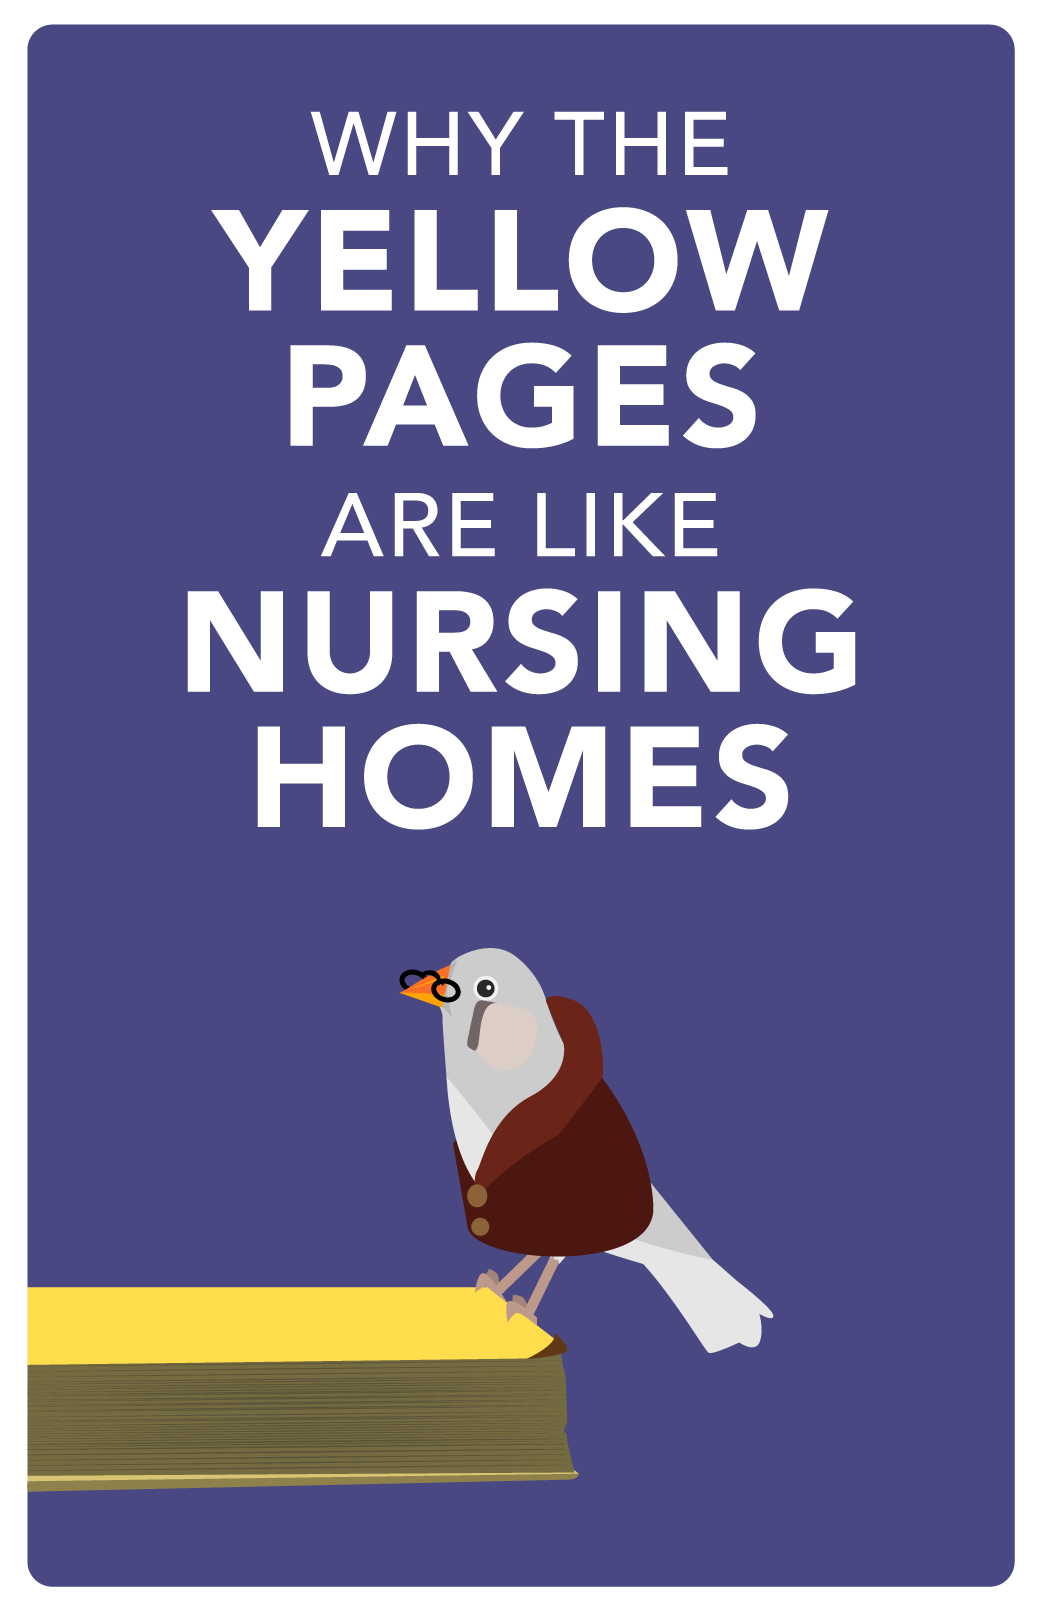 Why are Yellow Pages like nursing homes?